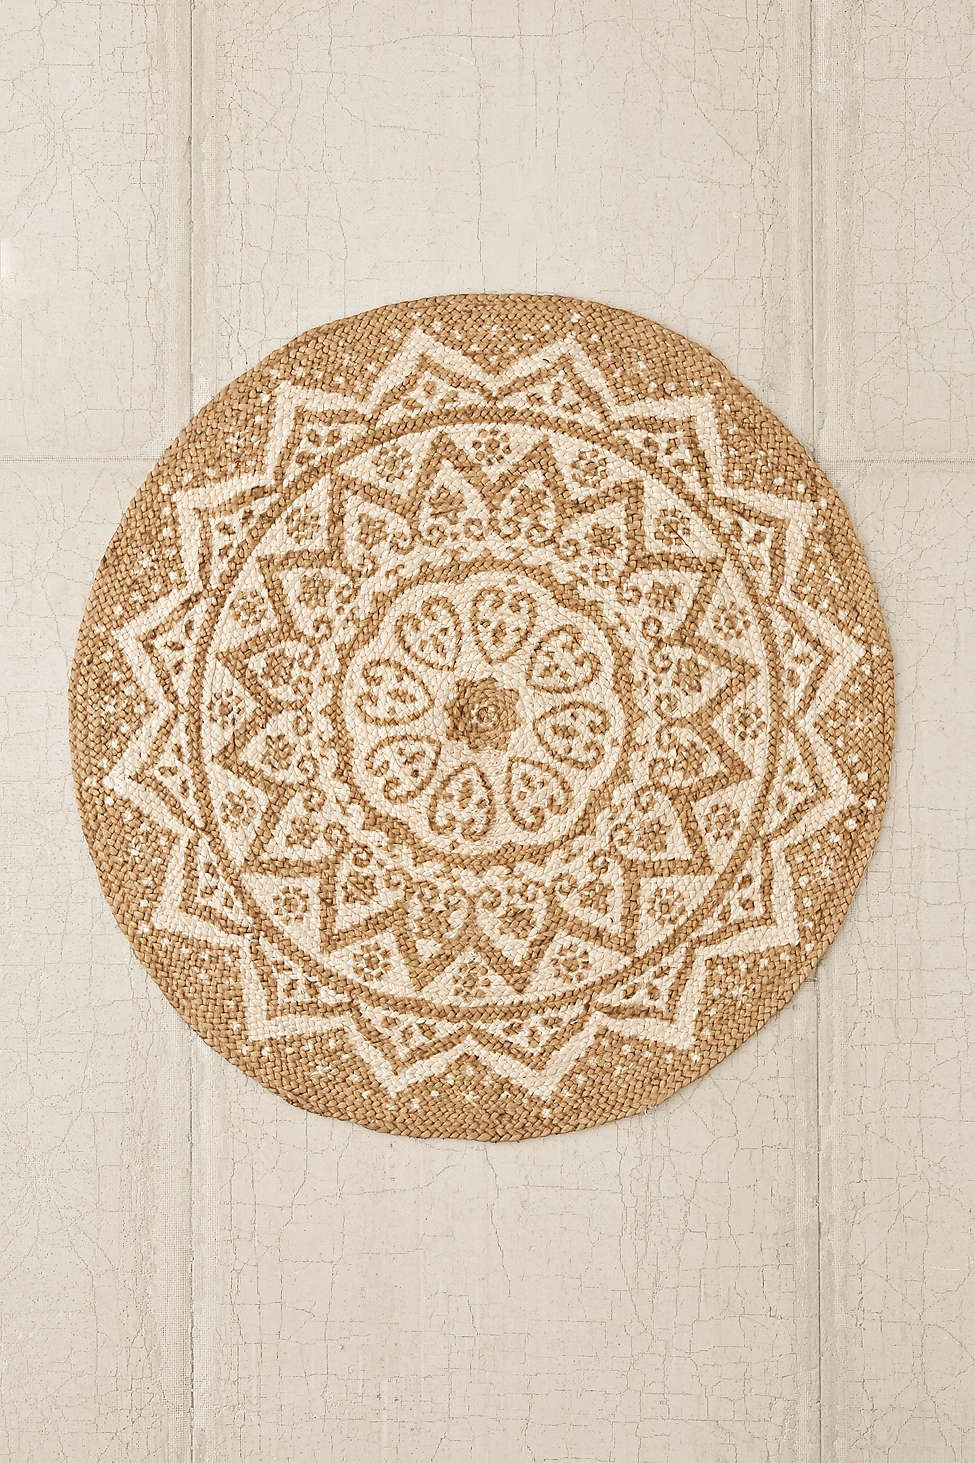 mats rugs decor com ecklar rug indoor braided selections at style cream shop area oriental pl round lowes home